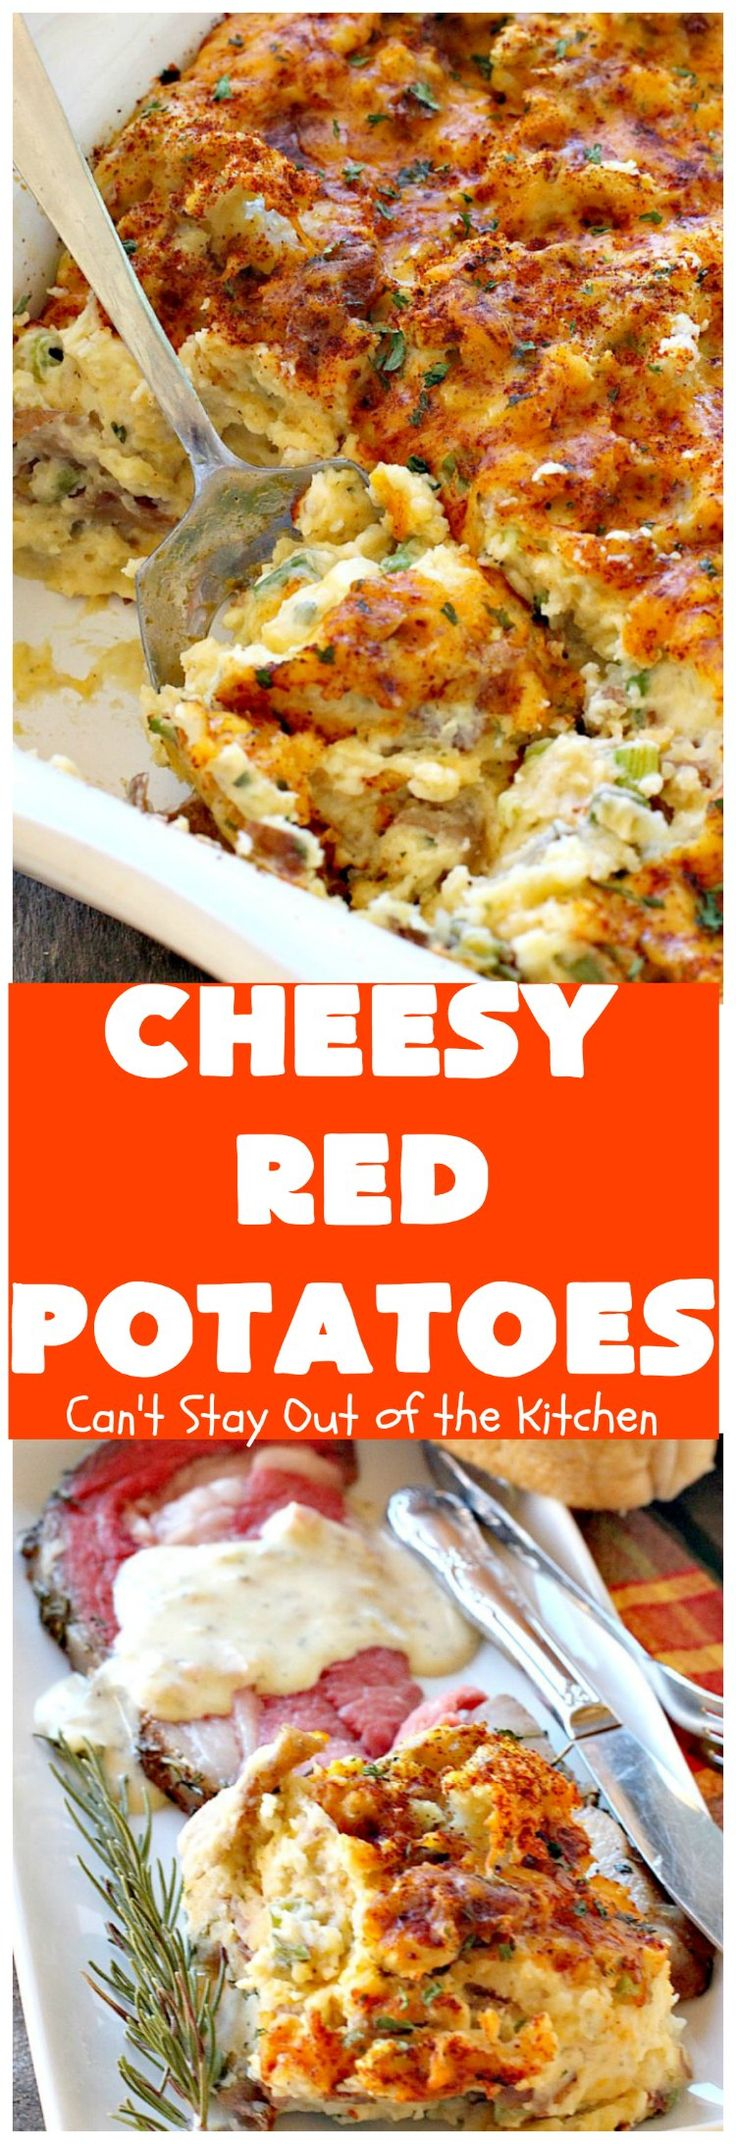 Cheesy Red Potatoes | Can't Stay Out of the Kitchen | these fabulous cheesy #potatoes make the perfect side dish for beef, chicken, pork or fish! They are absolutely scrumptious! #cheese #casserole #glutenfree